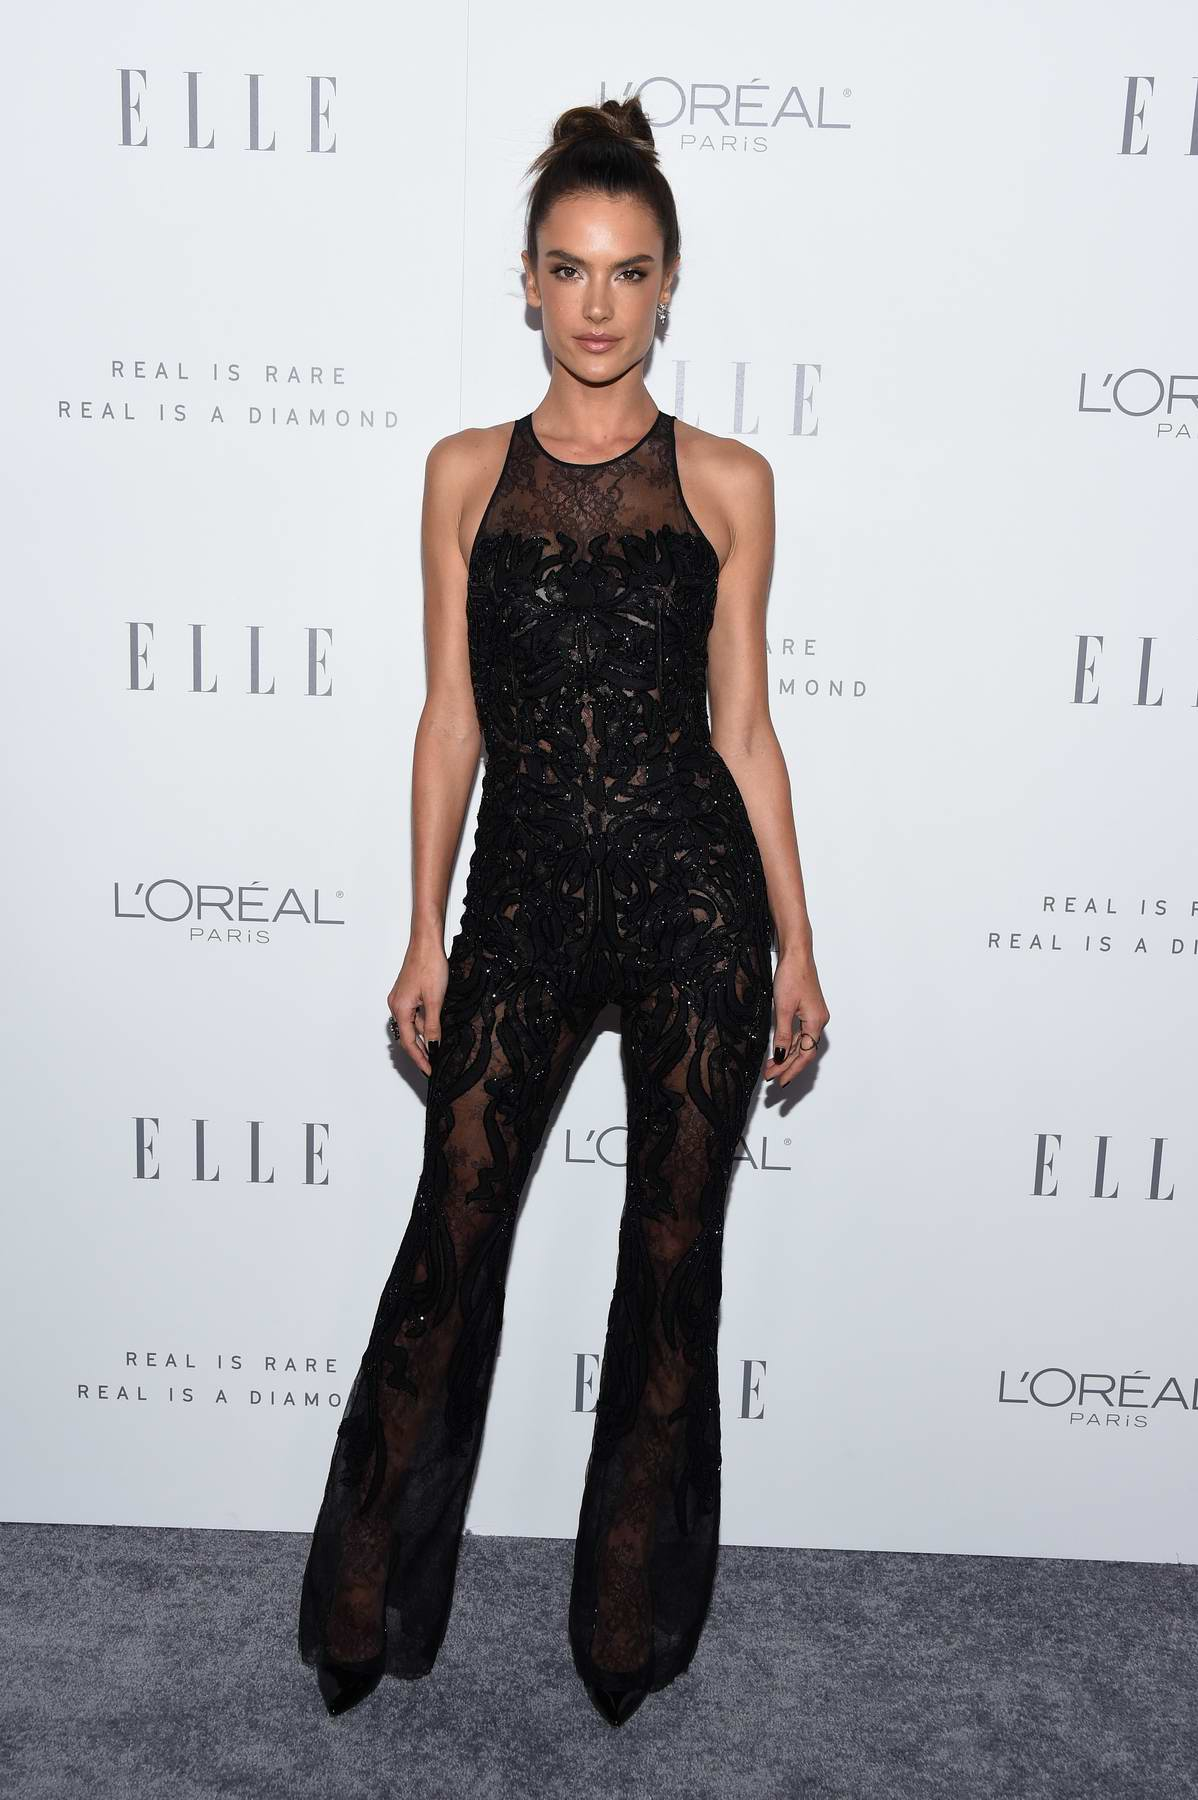 Alessandra Ambrosio at the Elle's 24th Annual Women in Hollywood Celebration in Los Angeles